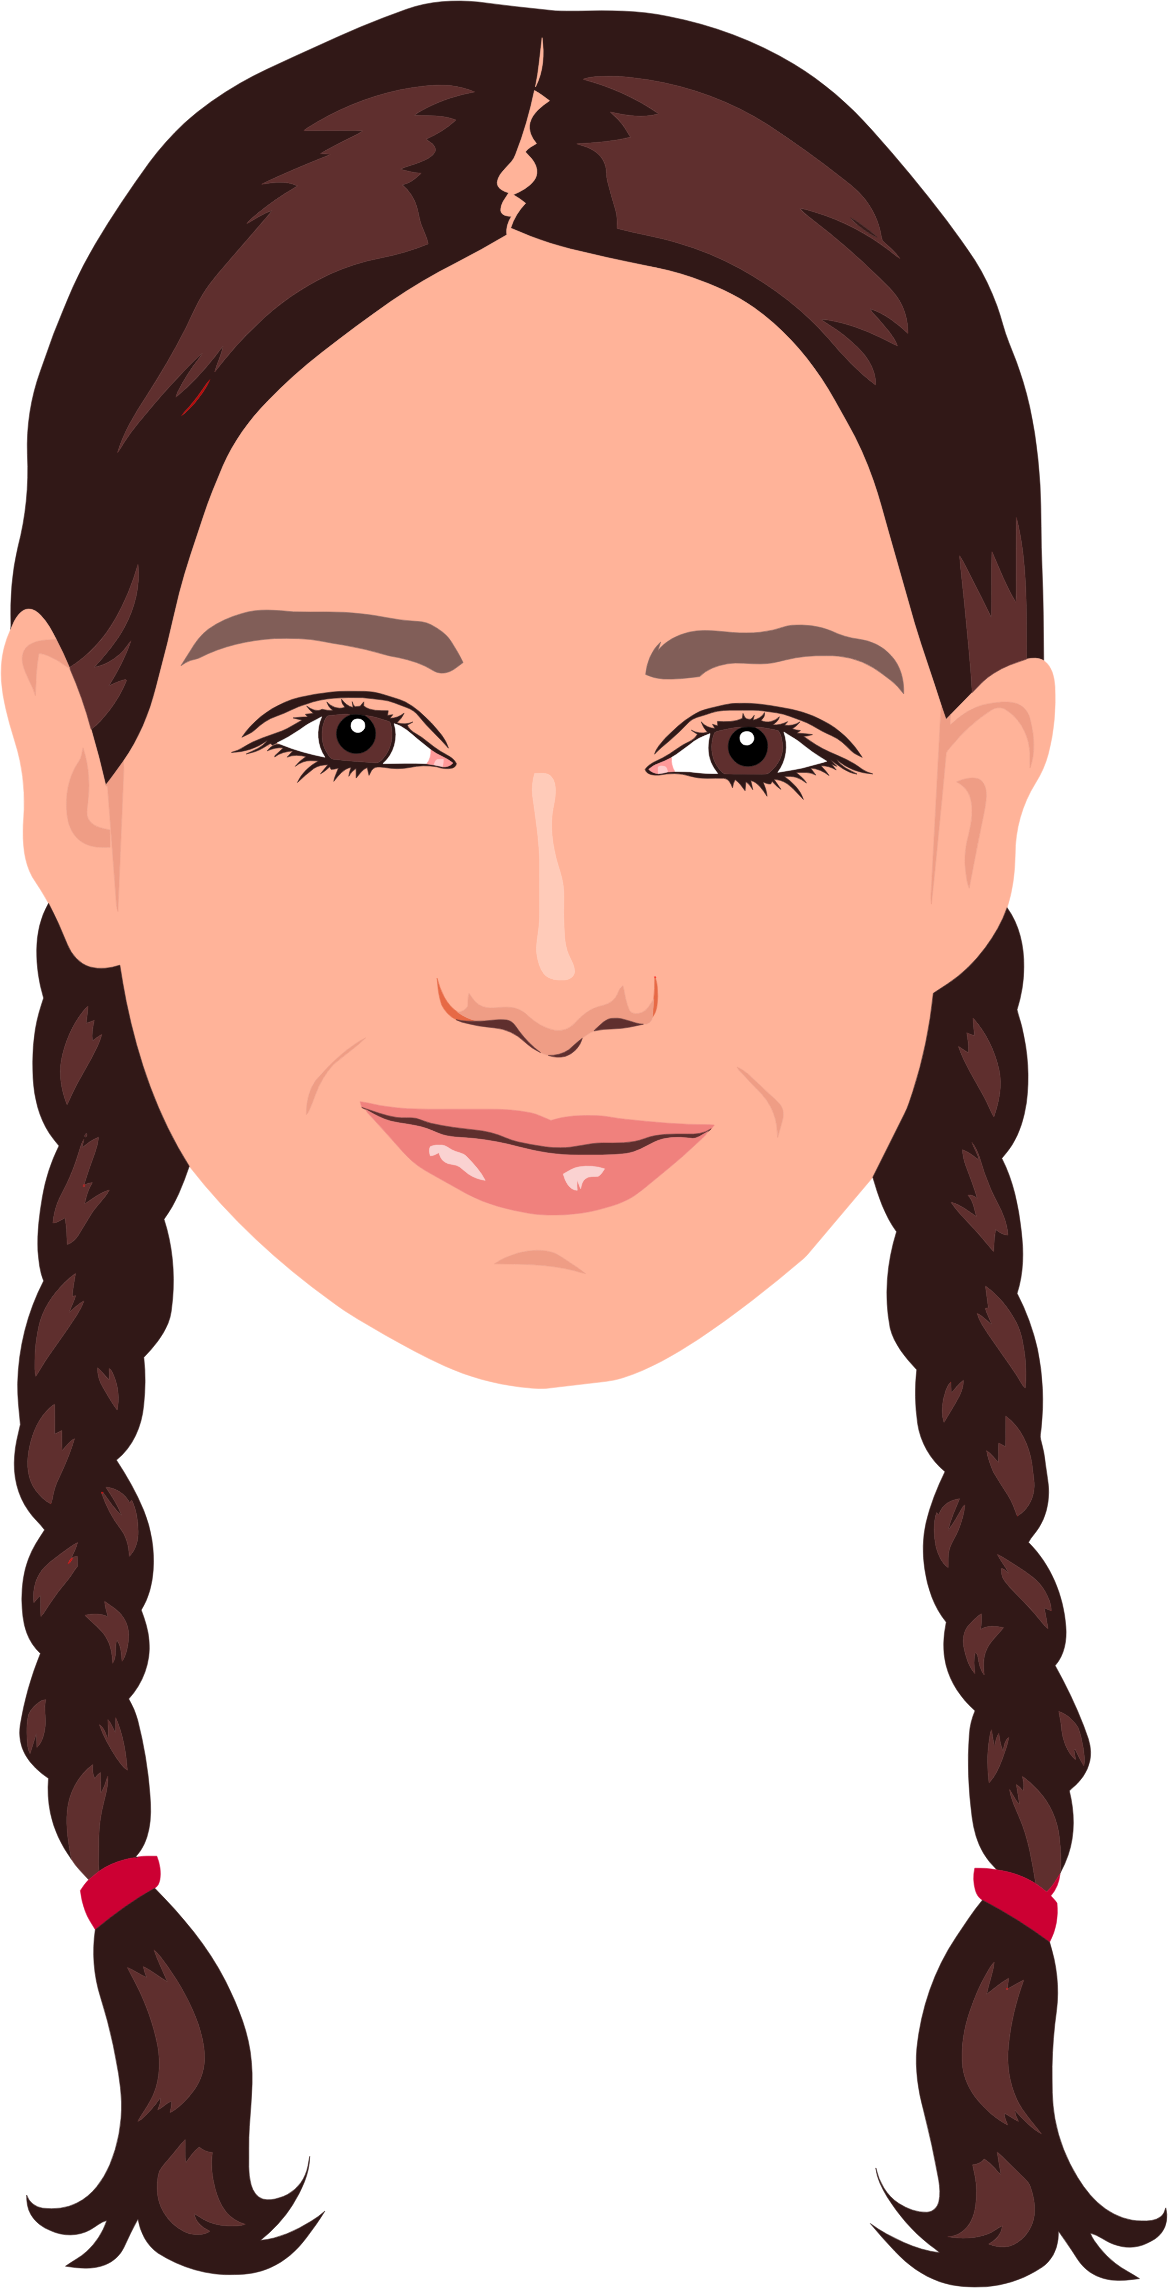 Braided Hair Girl Portrait by GDJ